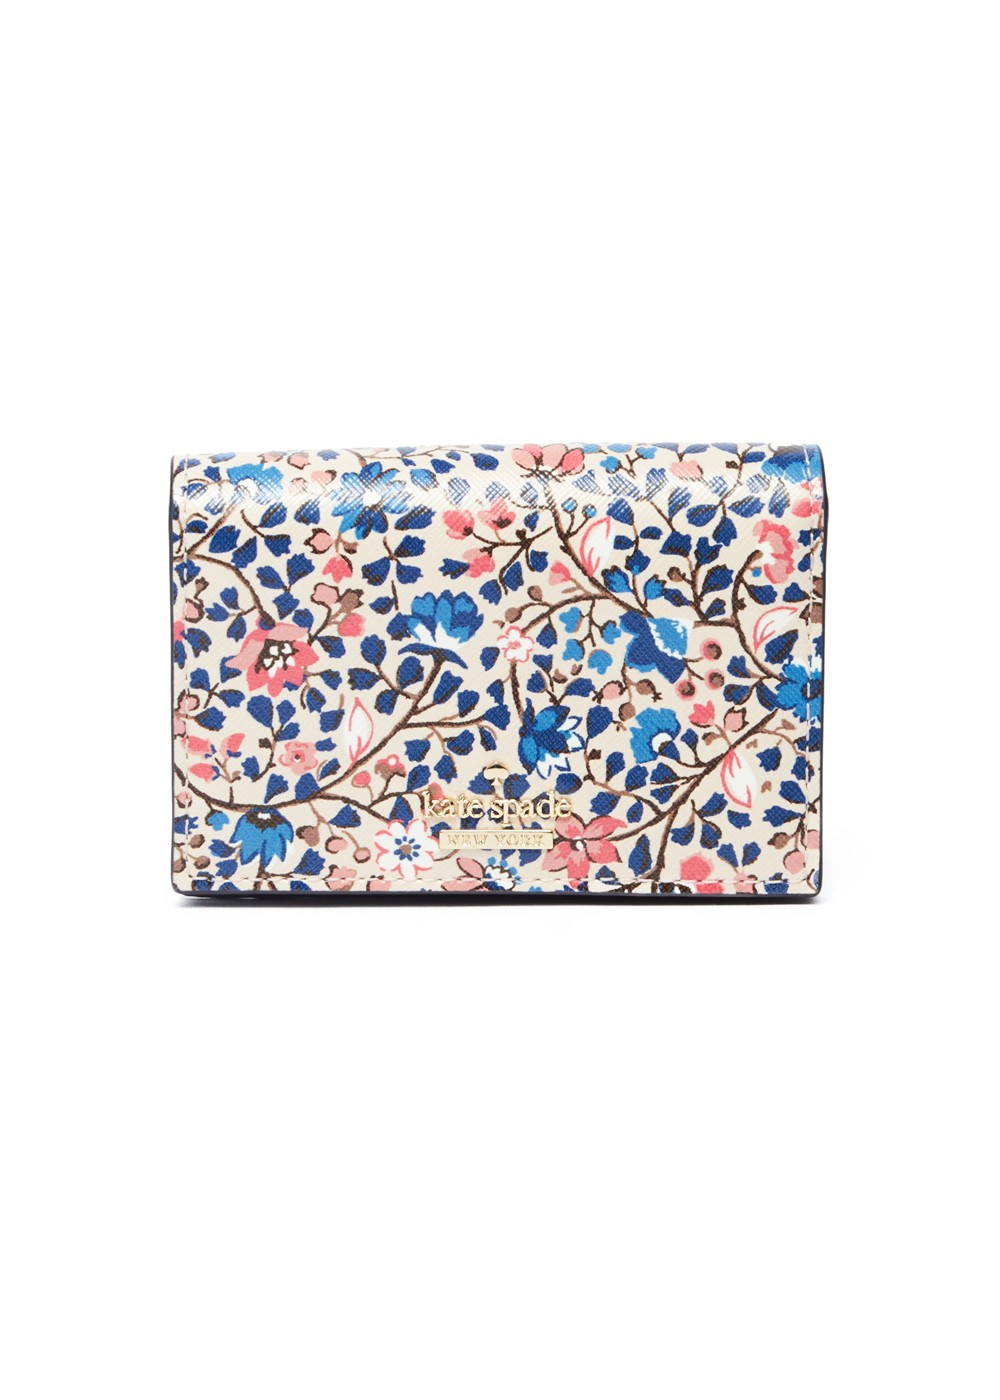 【最大48%OFF】CAMERON STREET VINE GABE|CREAM MULTI|レディース財布|kate spade new york - wallet and more